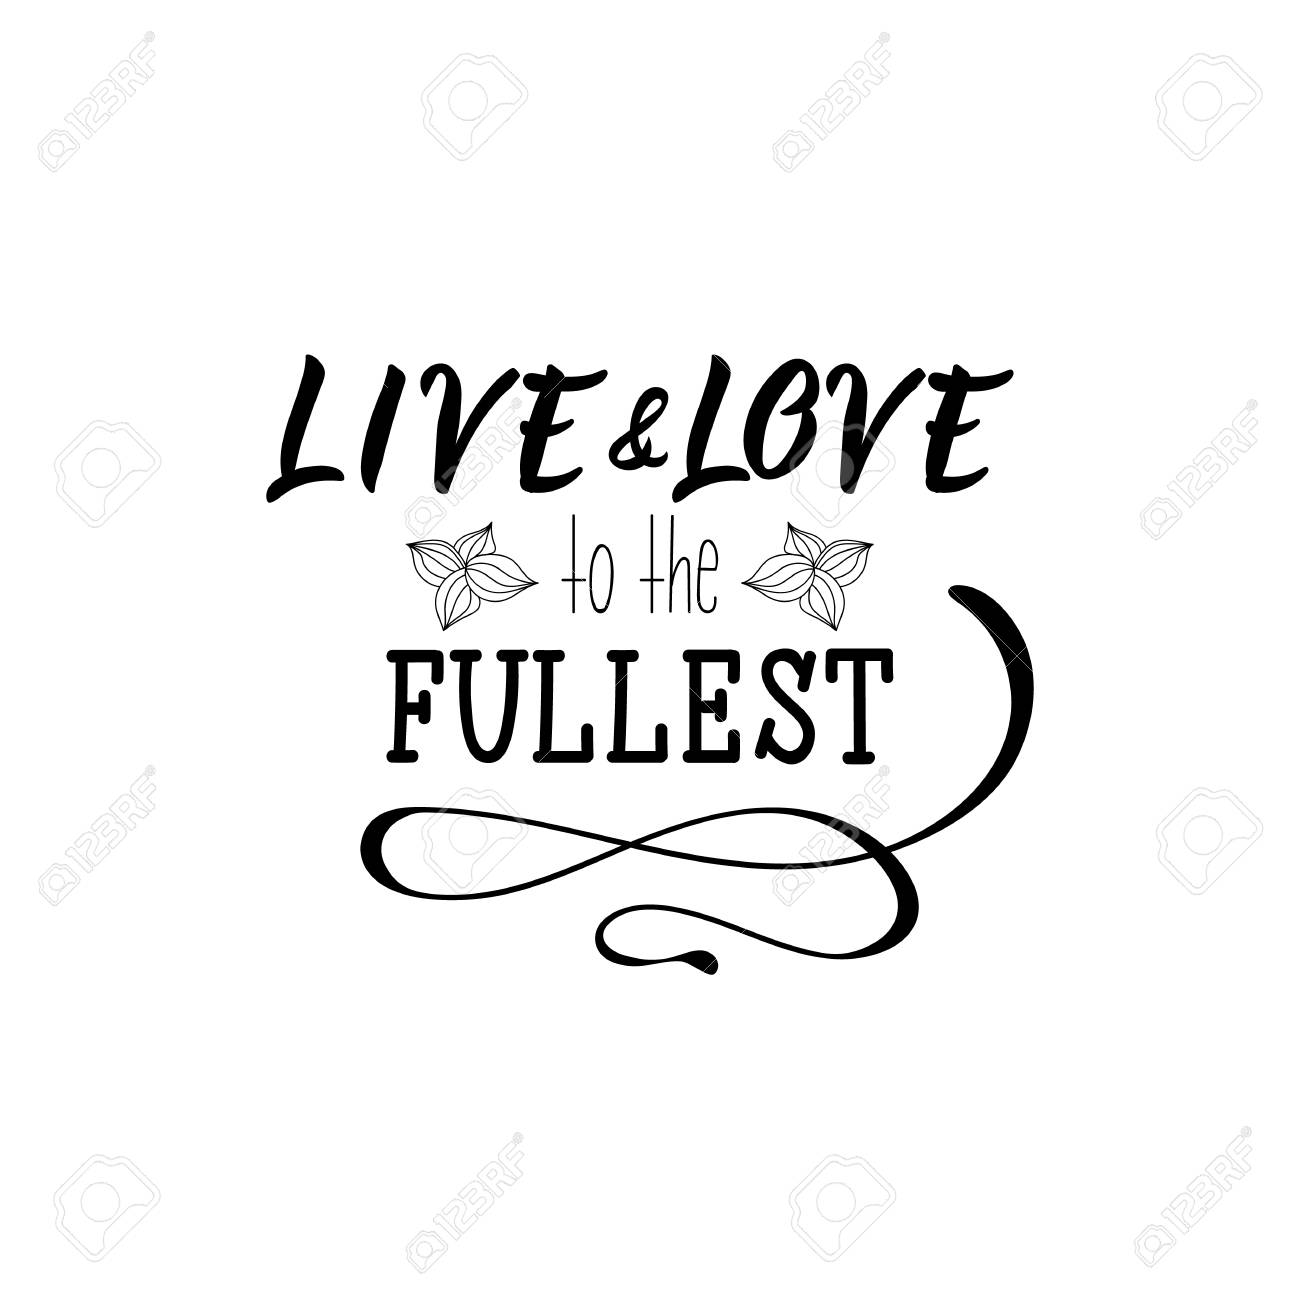 Live and love to the fullest lettering inspirational and funny quotes can be